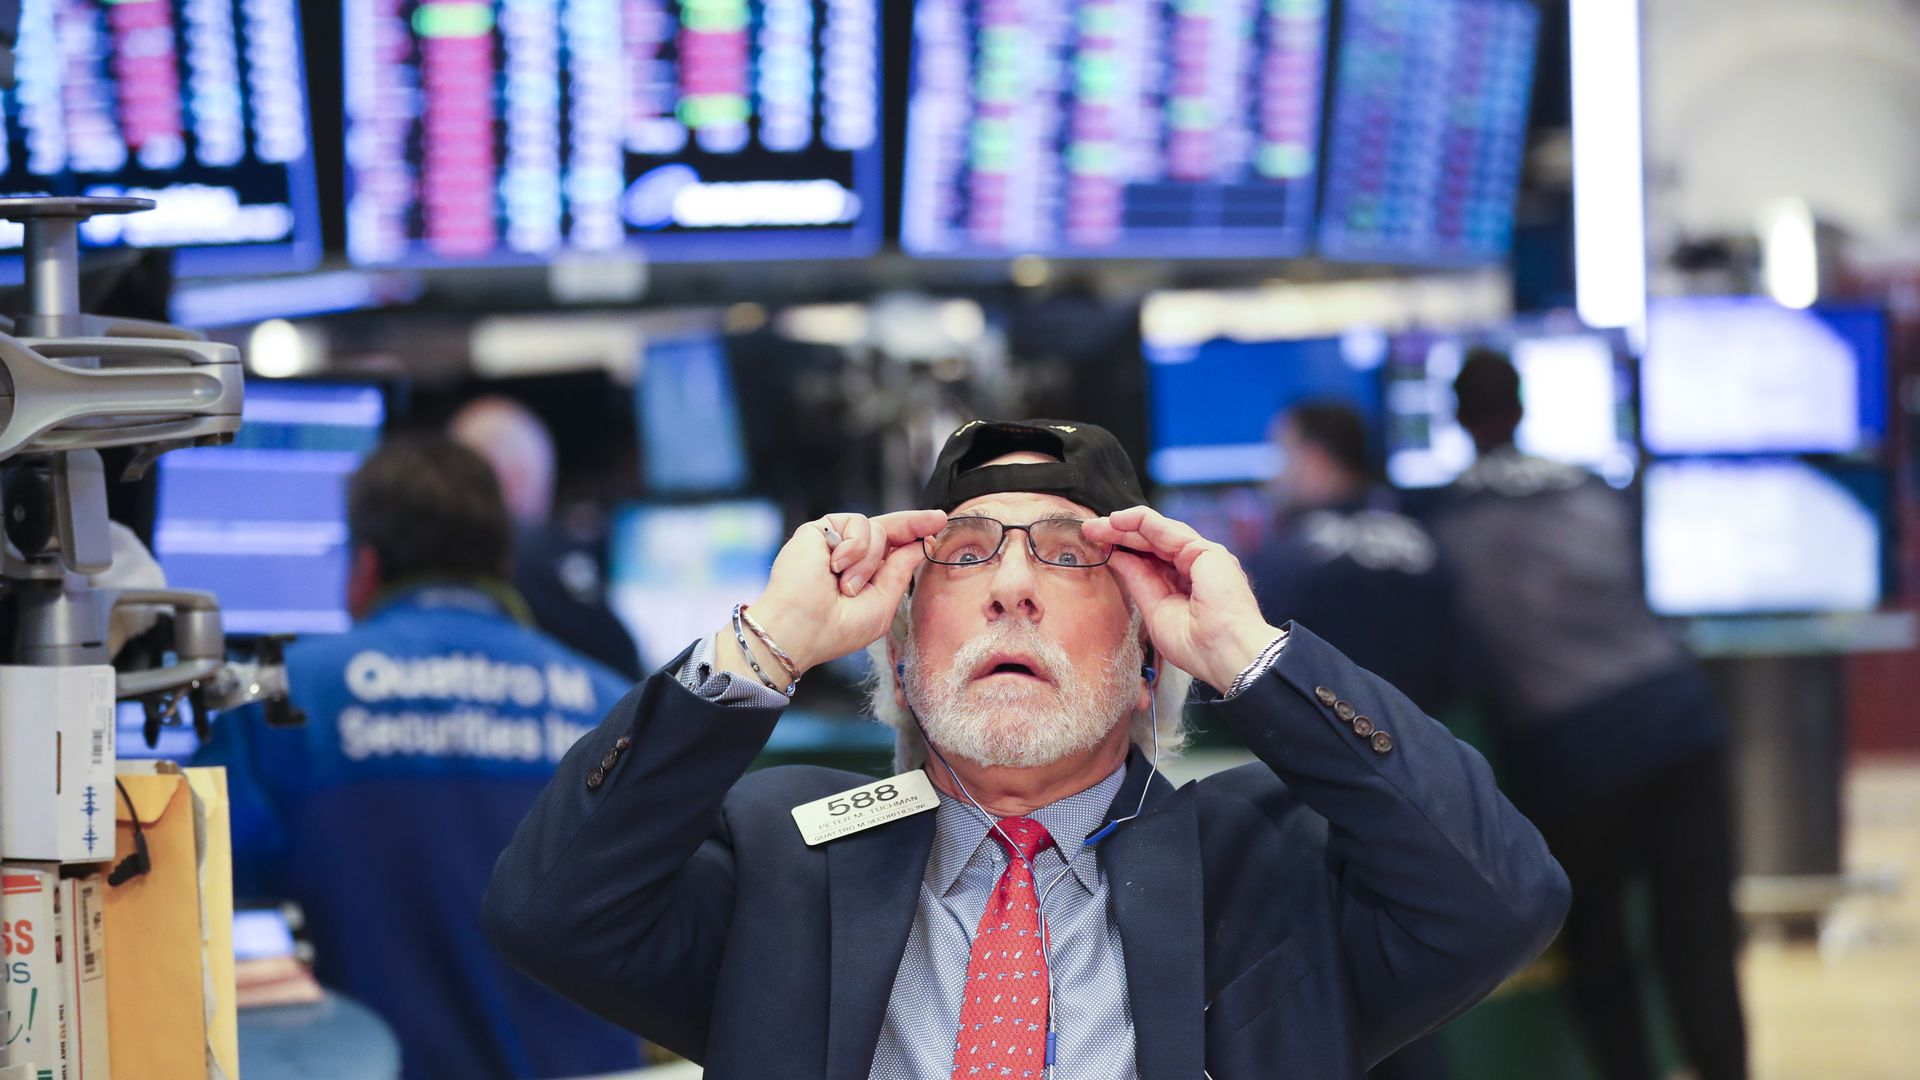 Stock market trader adjusts his glasses.